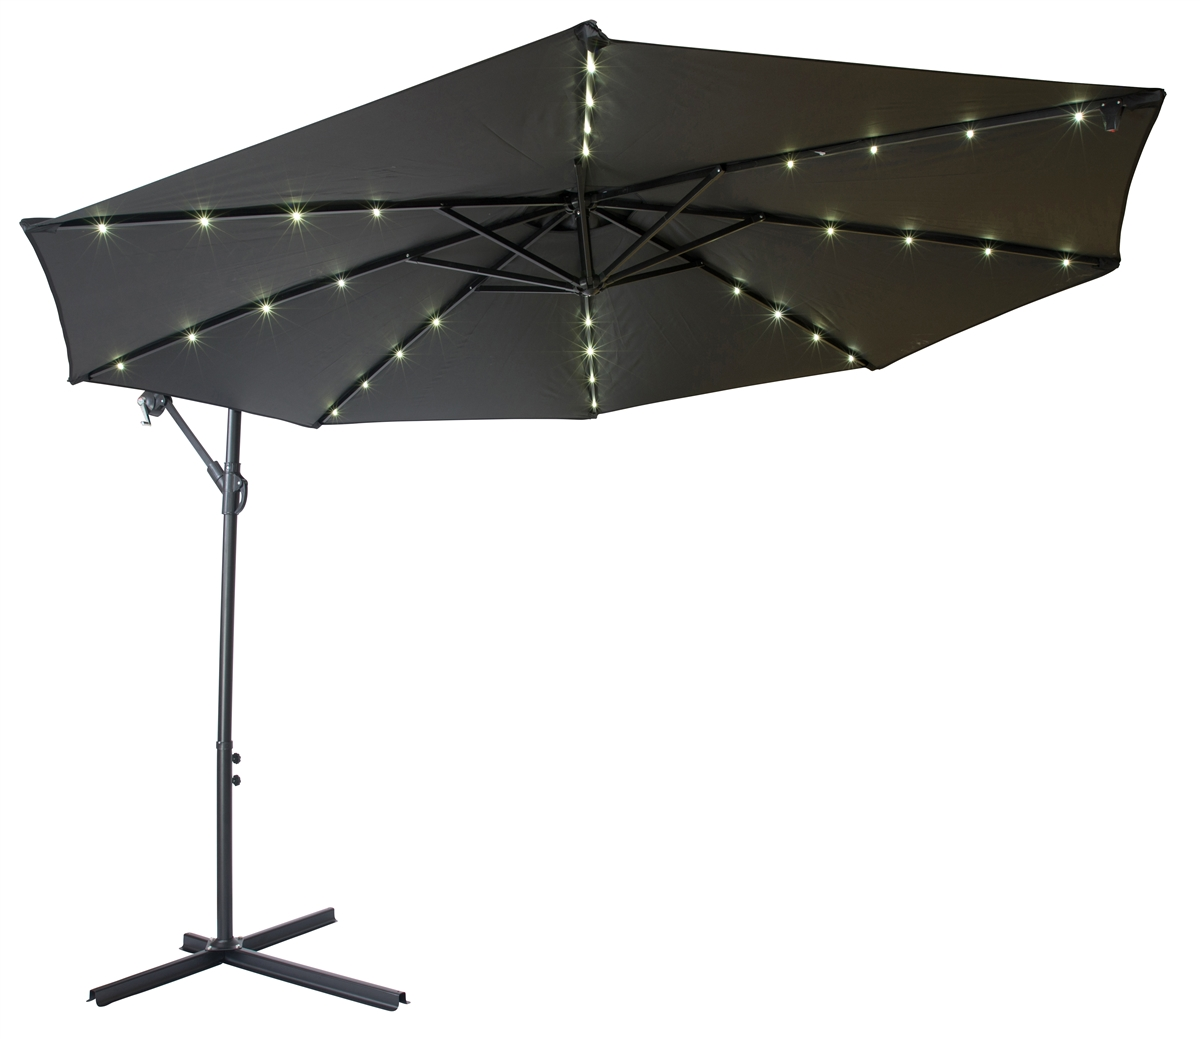 10 deluxe polyester offset patio umbrella with led lights by trademark innovations black